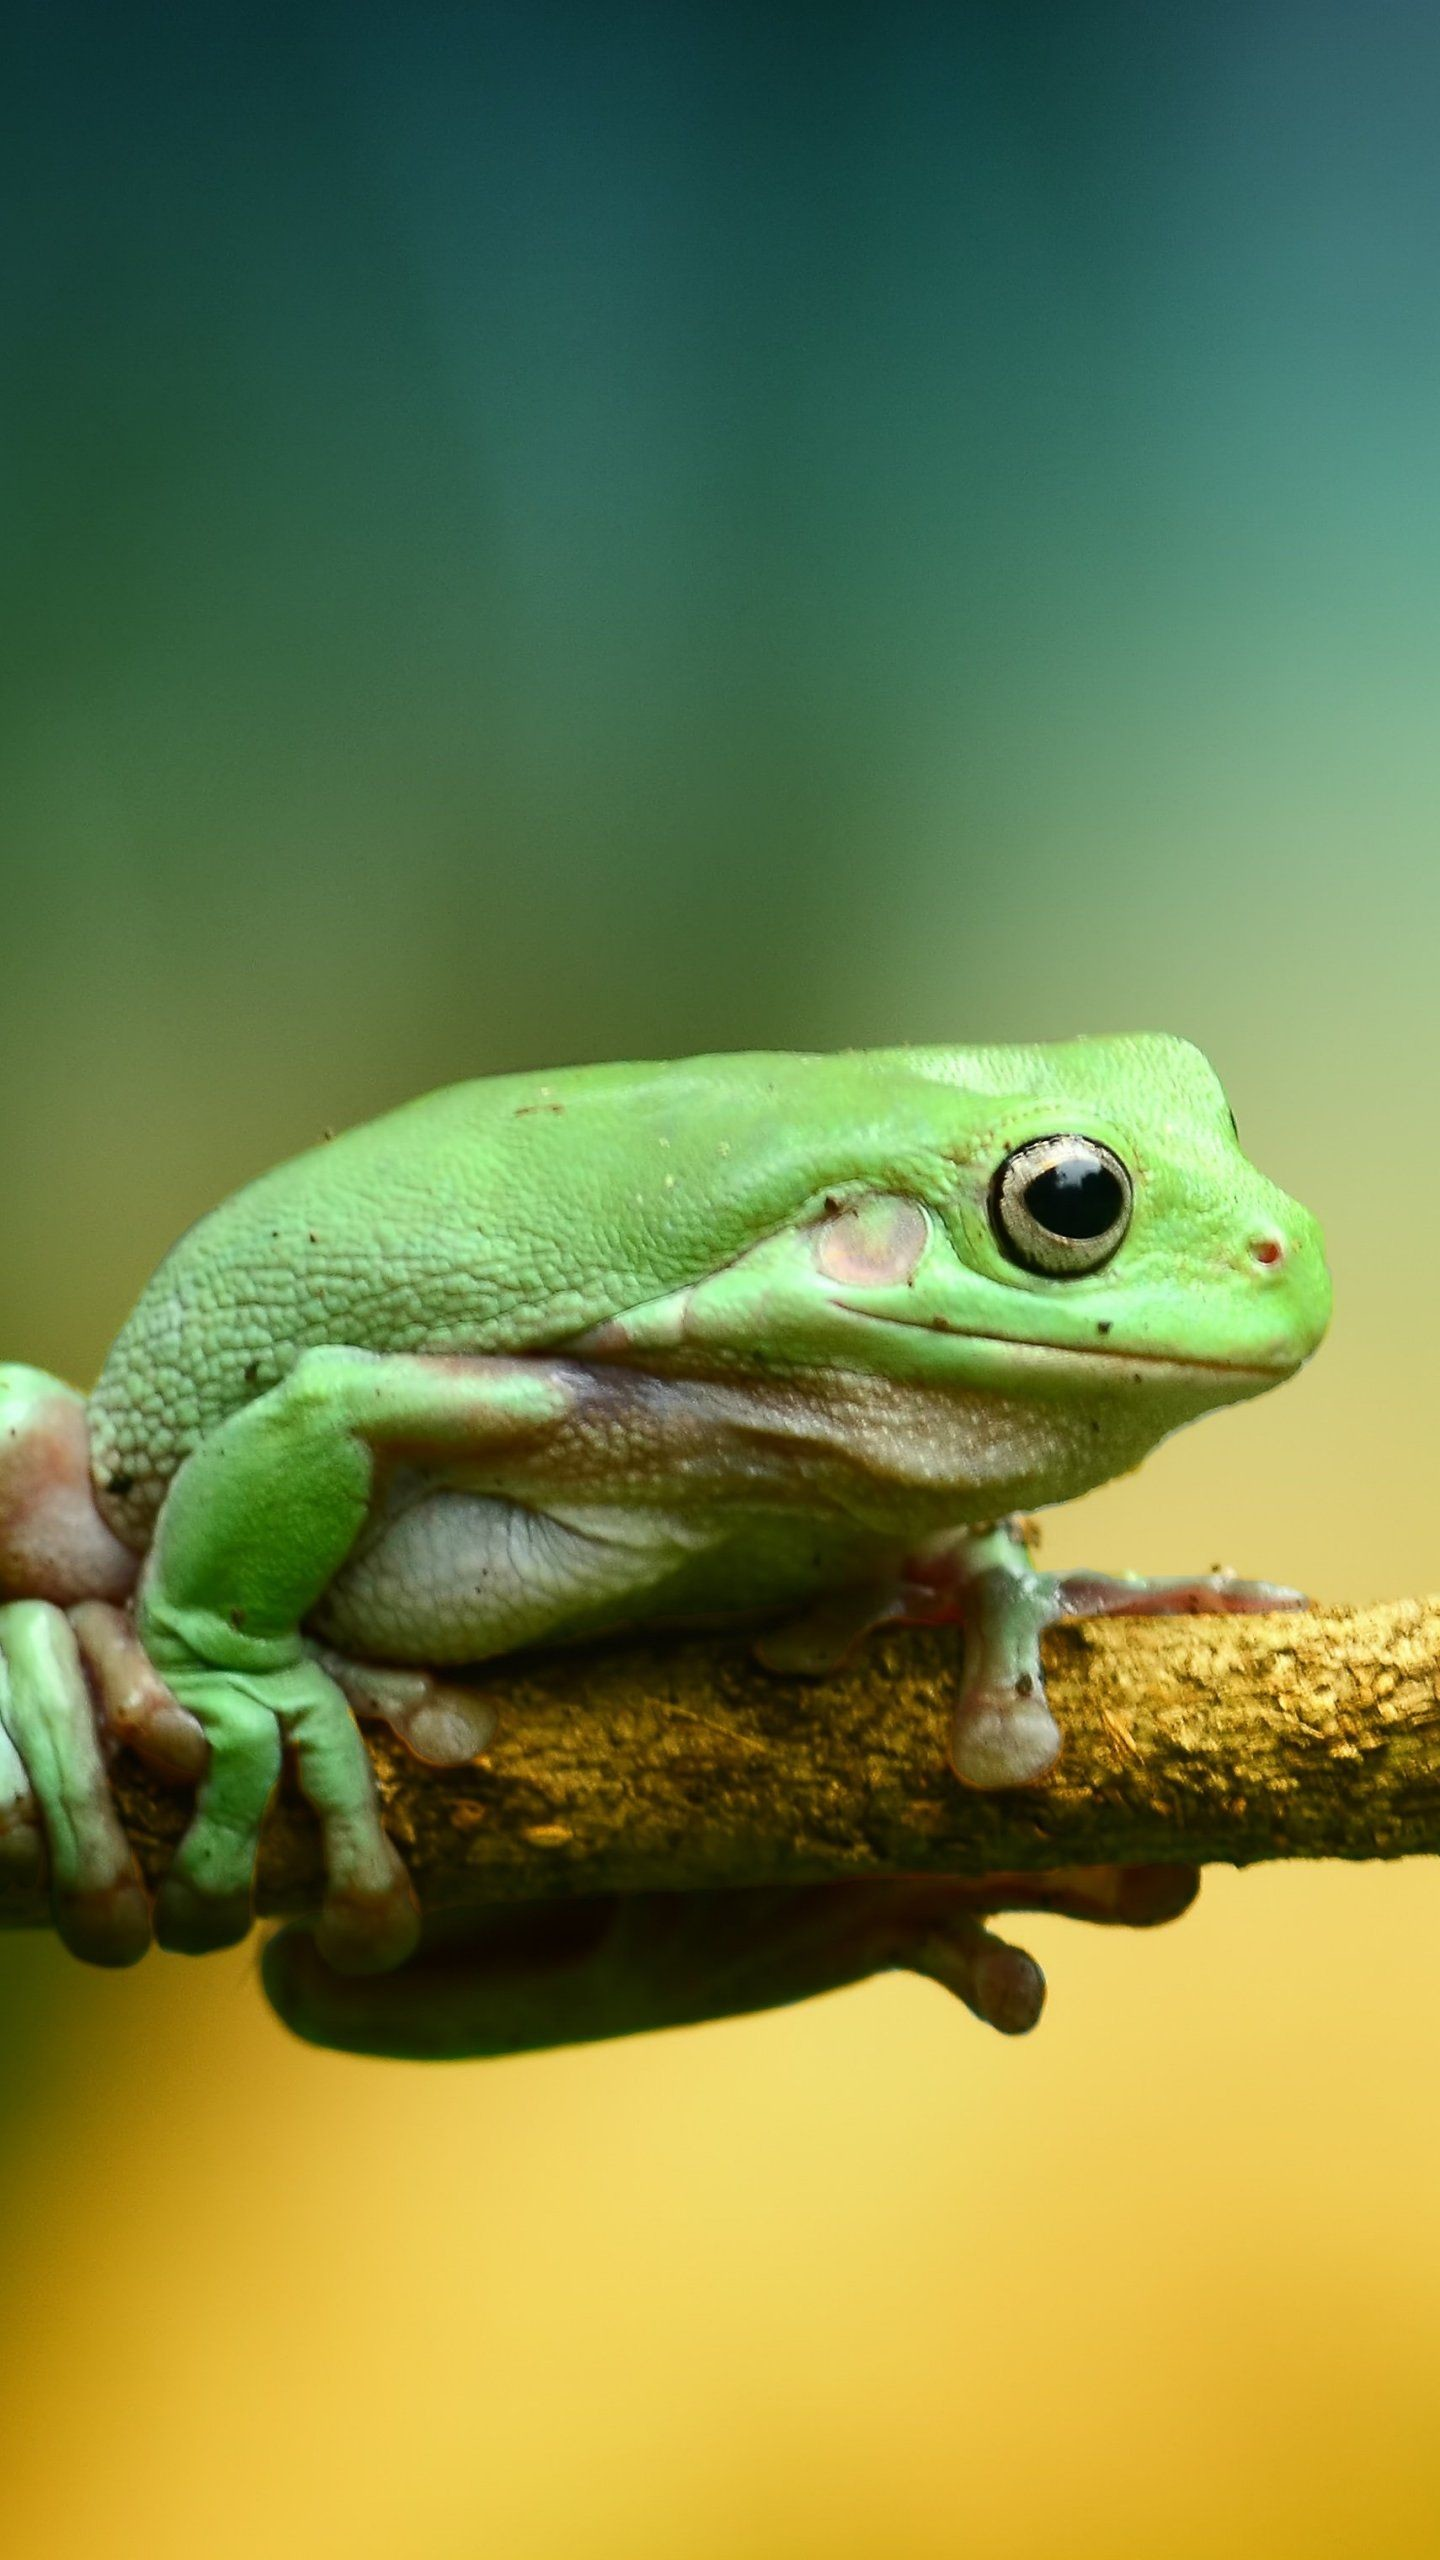 Res: 1440x2560, Green Frog iPhone Mobile Wallpaper